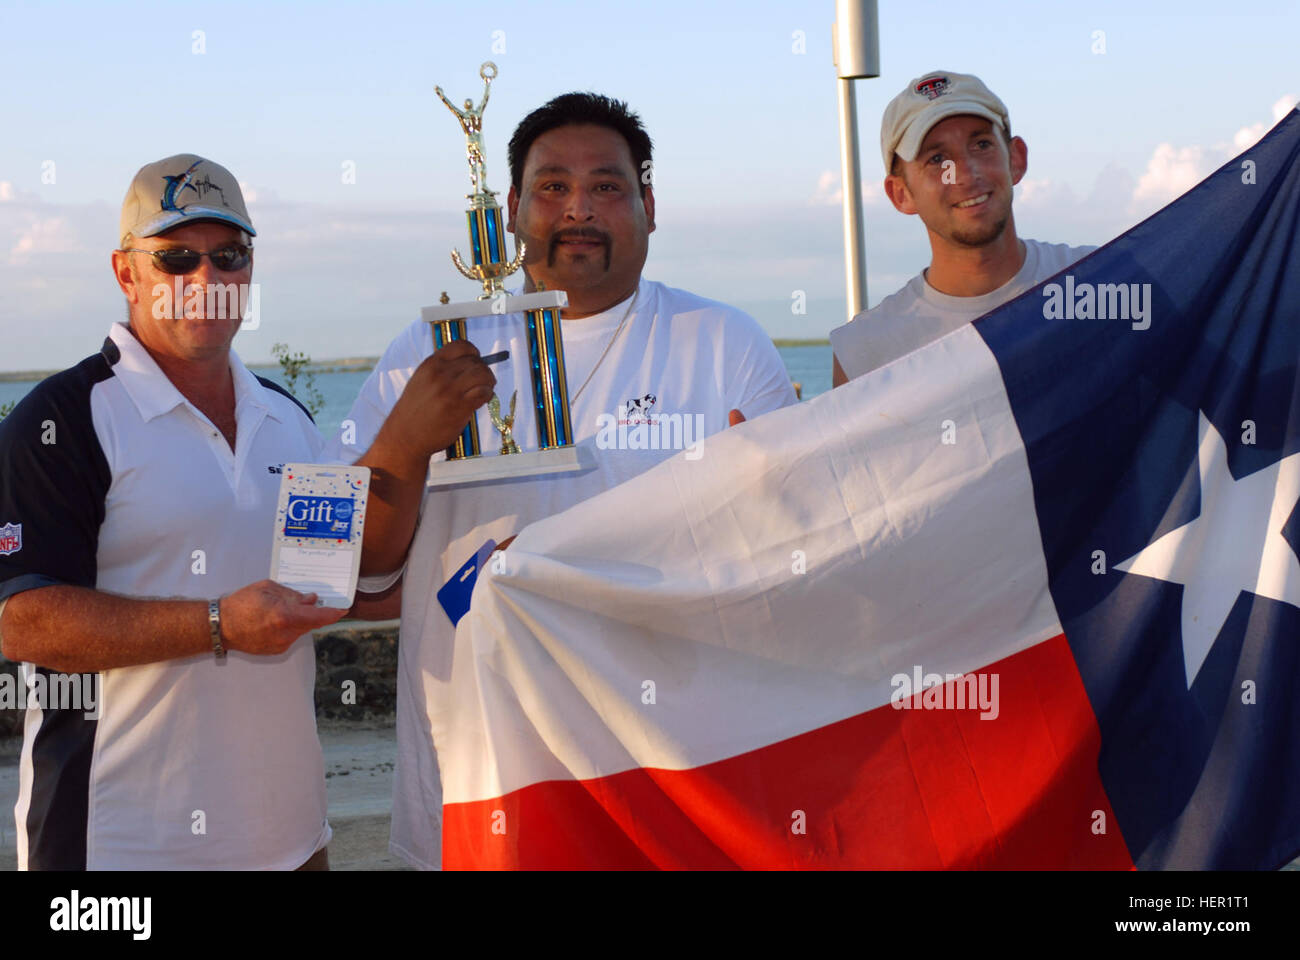 David Manzano (center) and William Abrahams (right) are presented a trophy by U.S. Naval Station Guantanamo Bay's - Stock Image